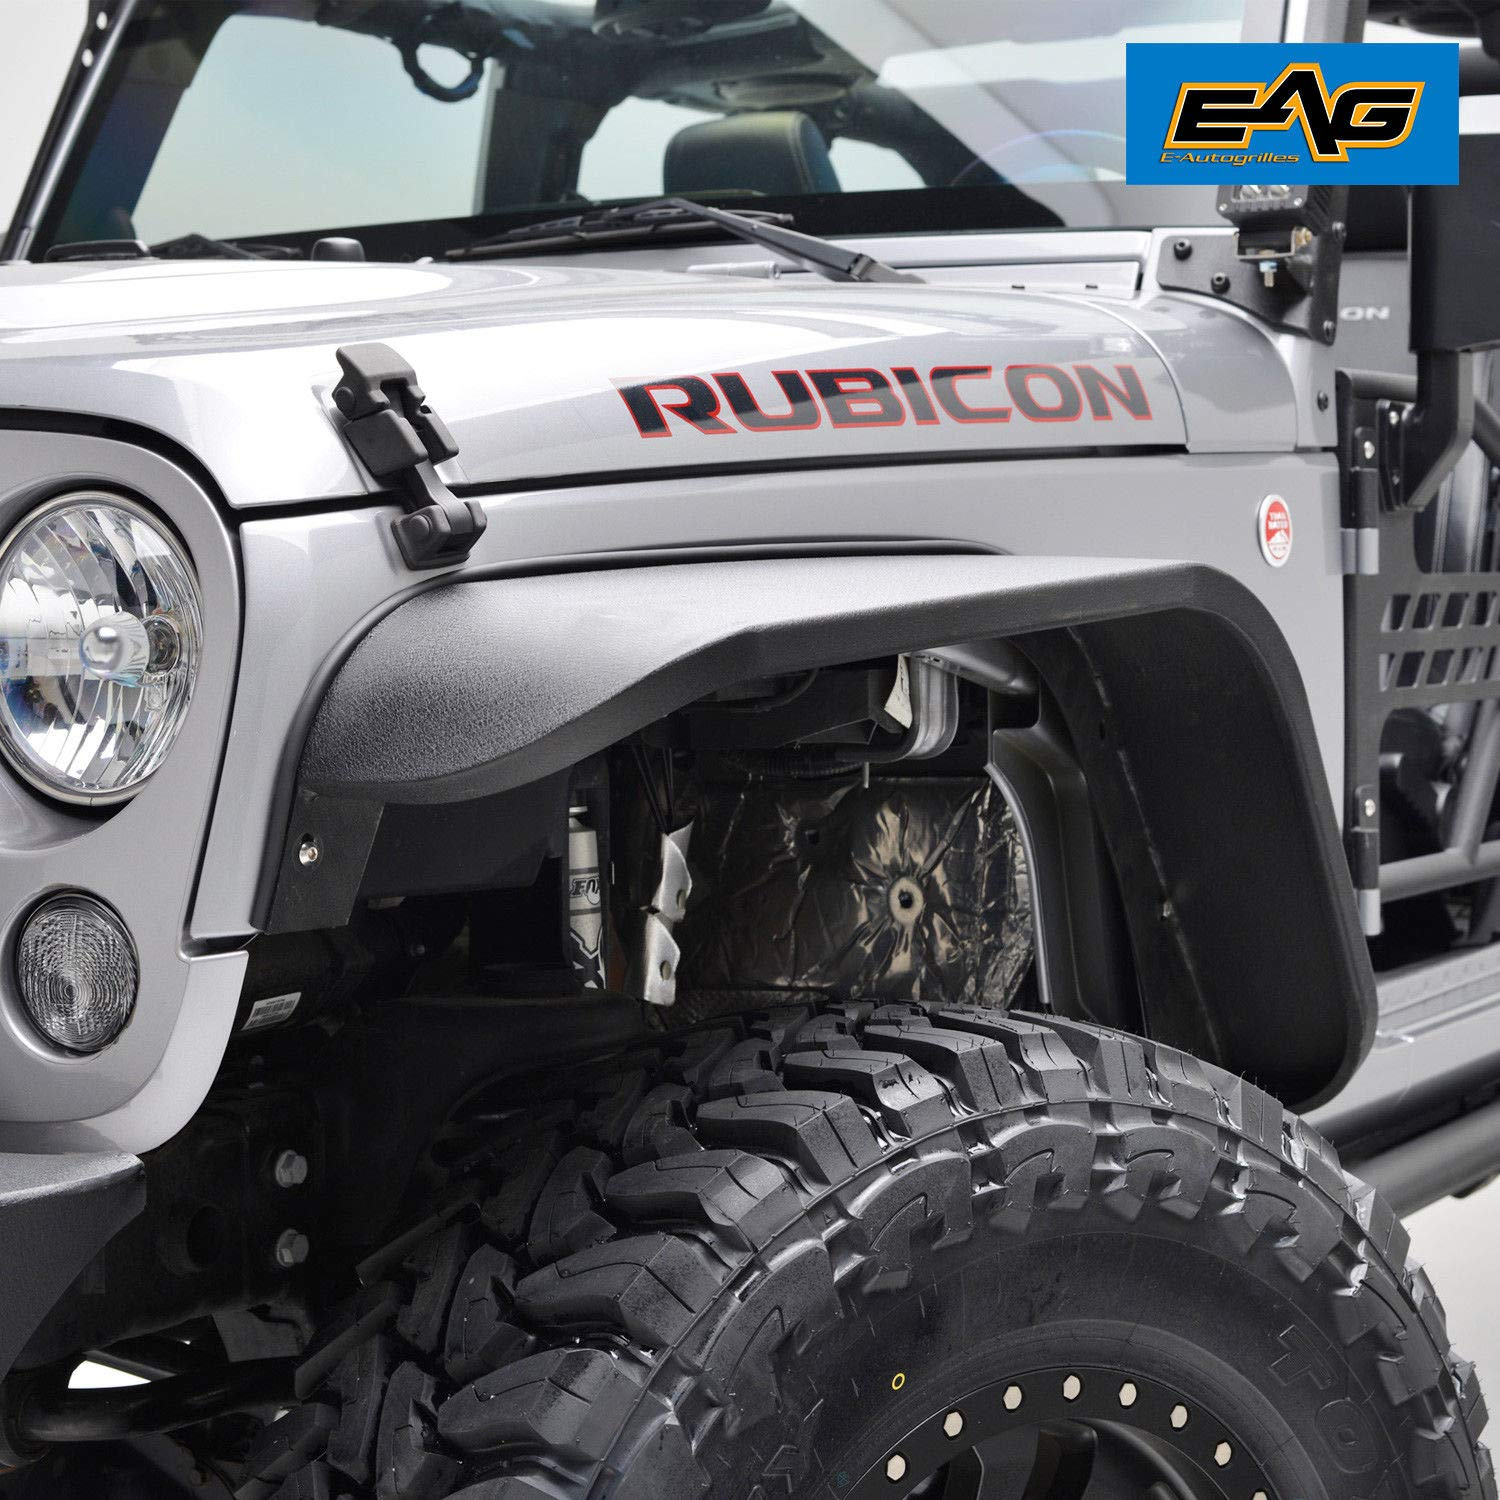 EAG Front Fender Flares Steel 2PCS Fit for 07-18 Jeep Wrangler JK